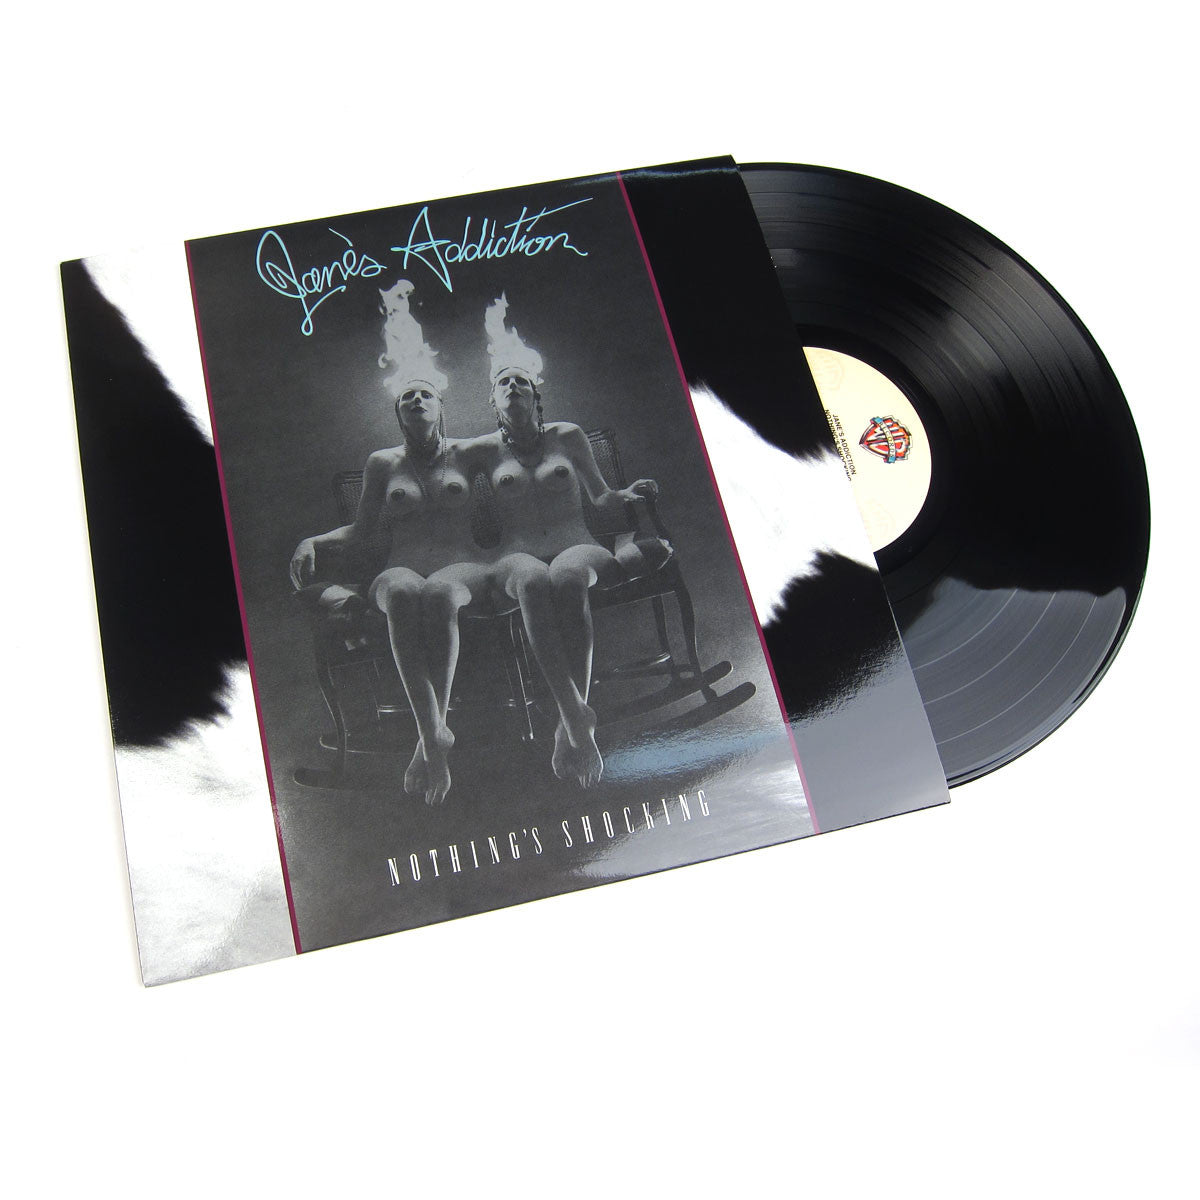 Jane's Addiction: Nothing's Shocking (180g) Vinyl LP